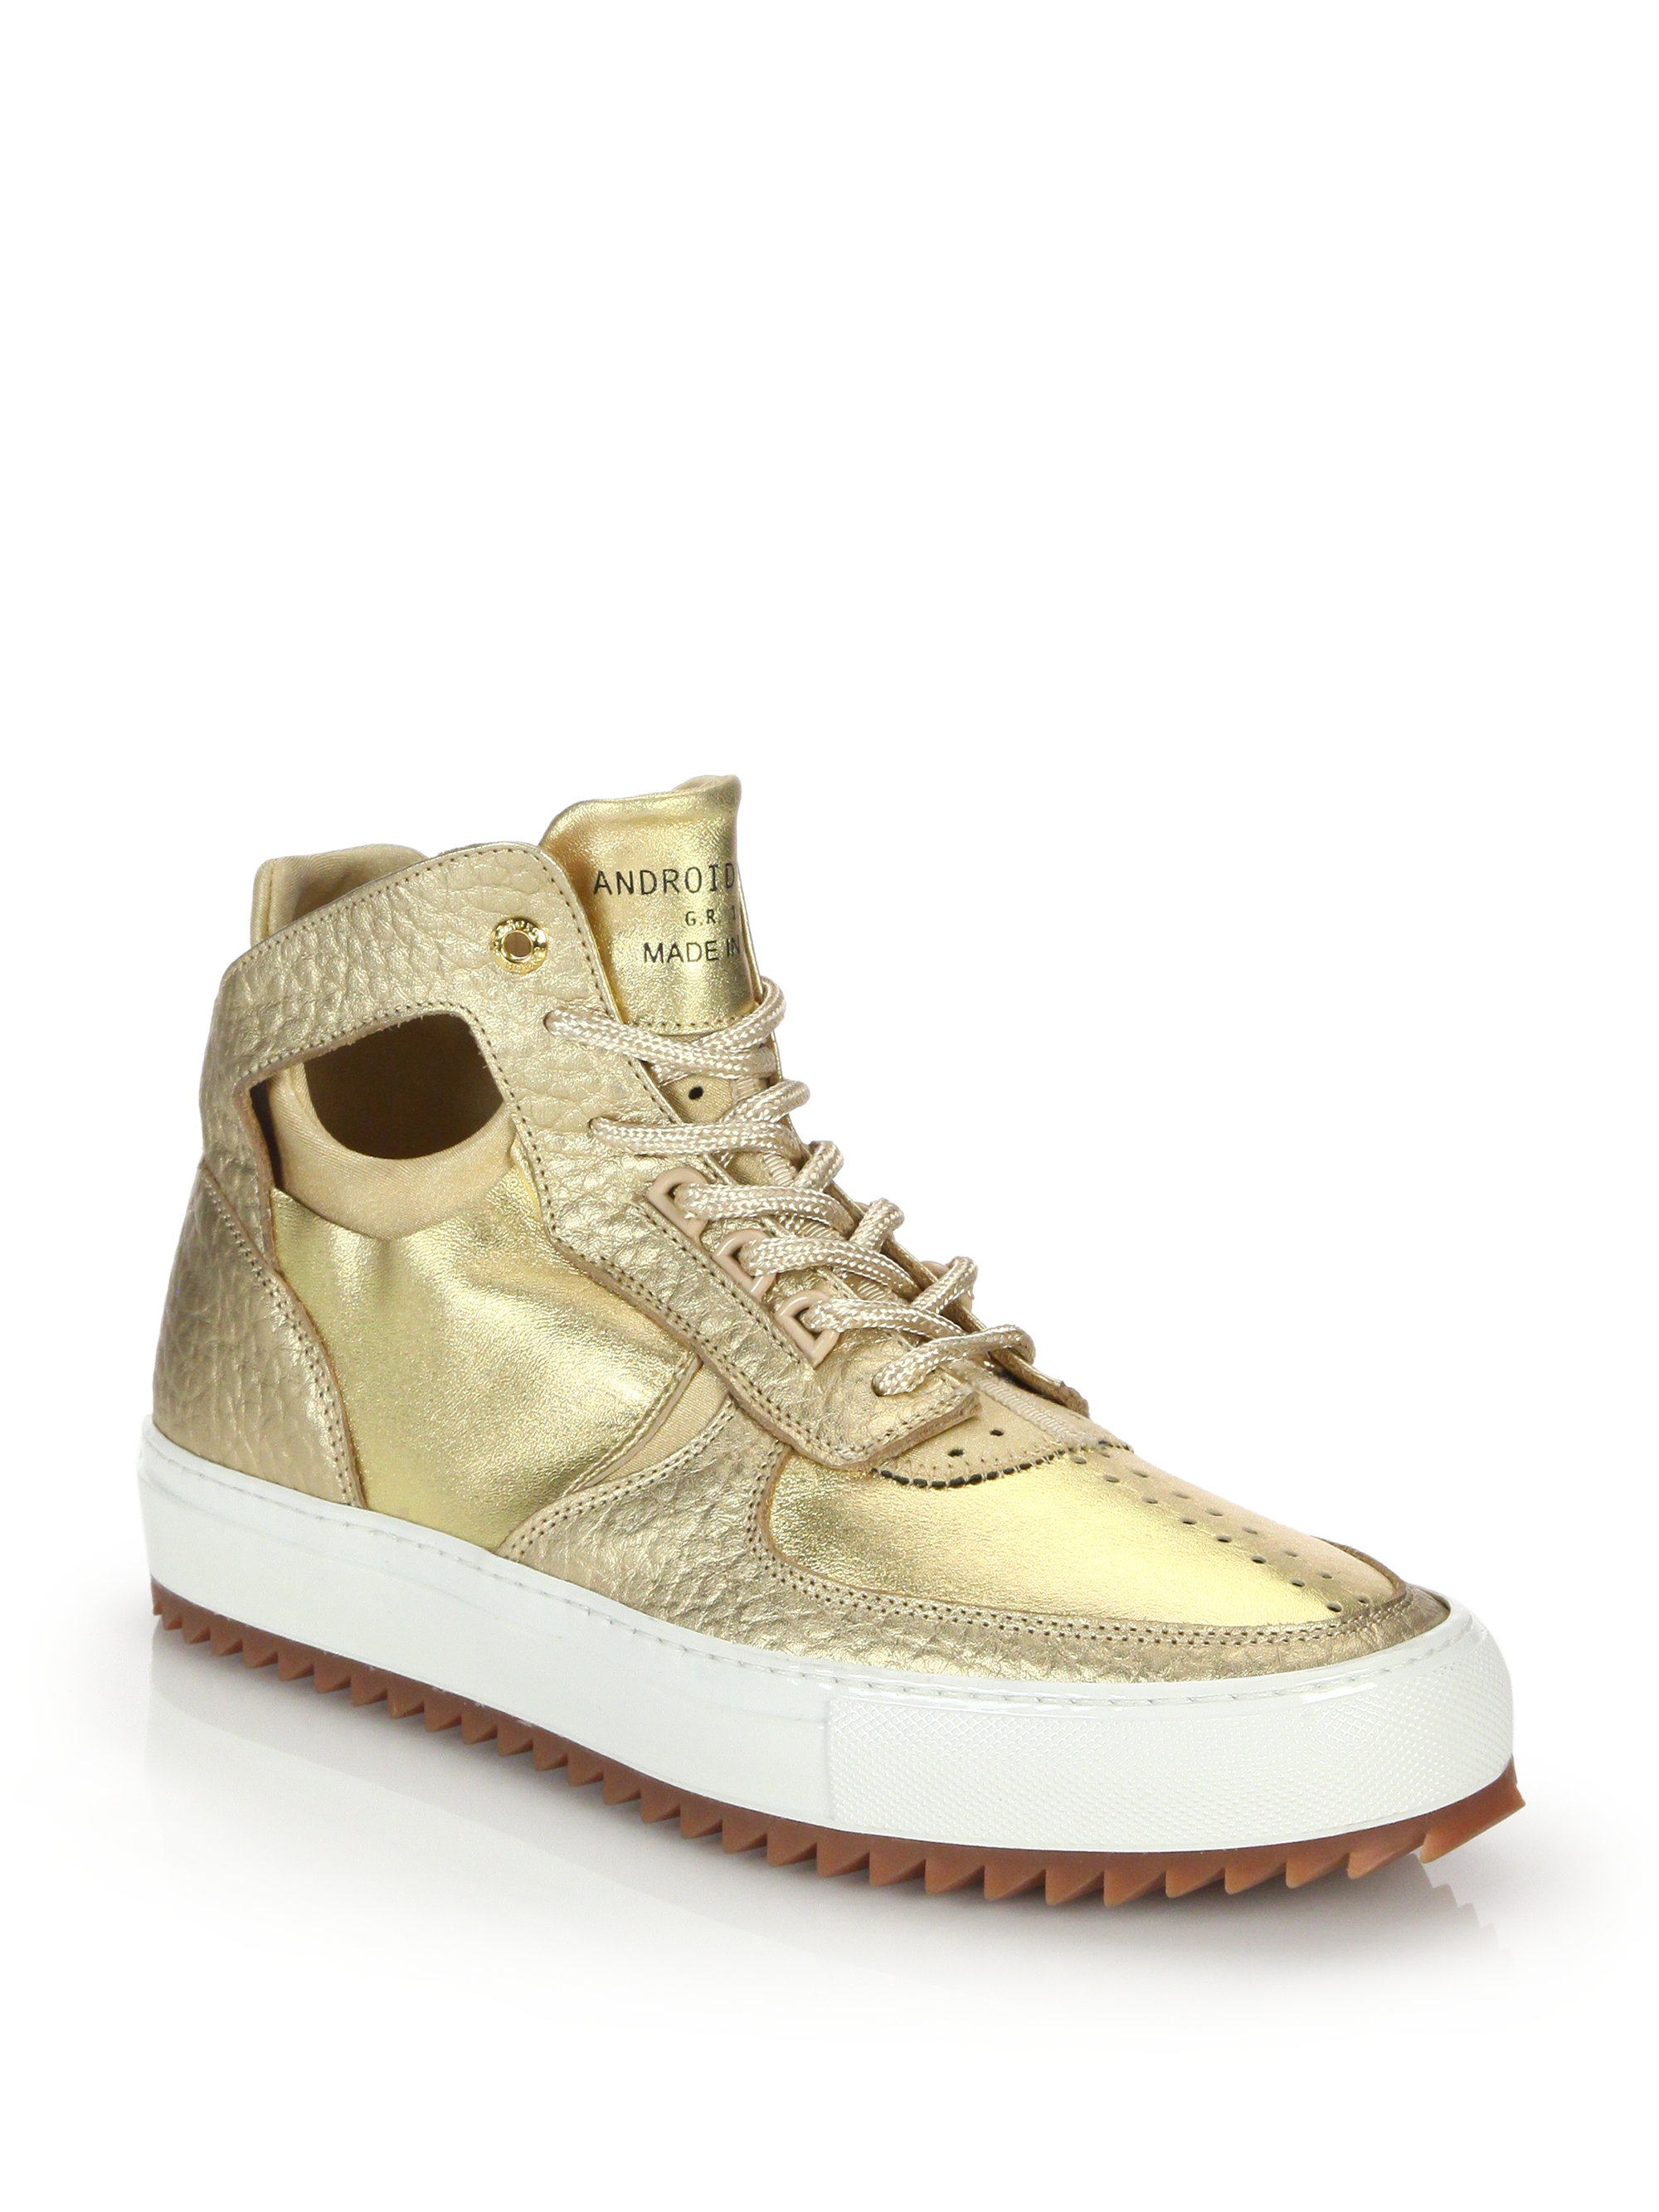 Lyst Android Homme Delta Mid Top Leather Sneakers In